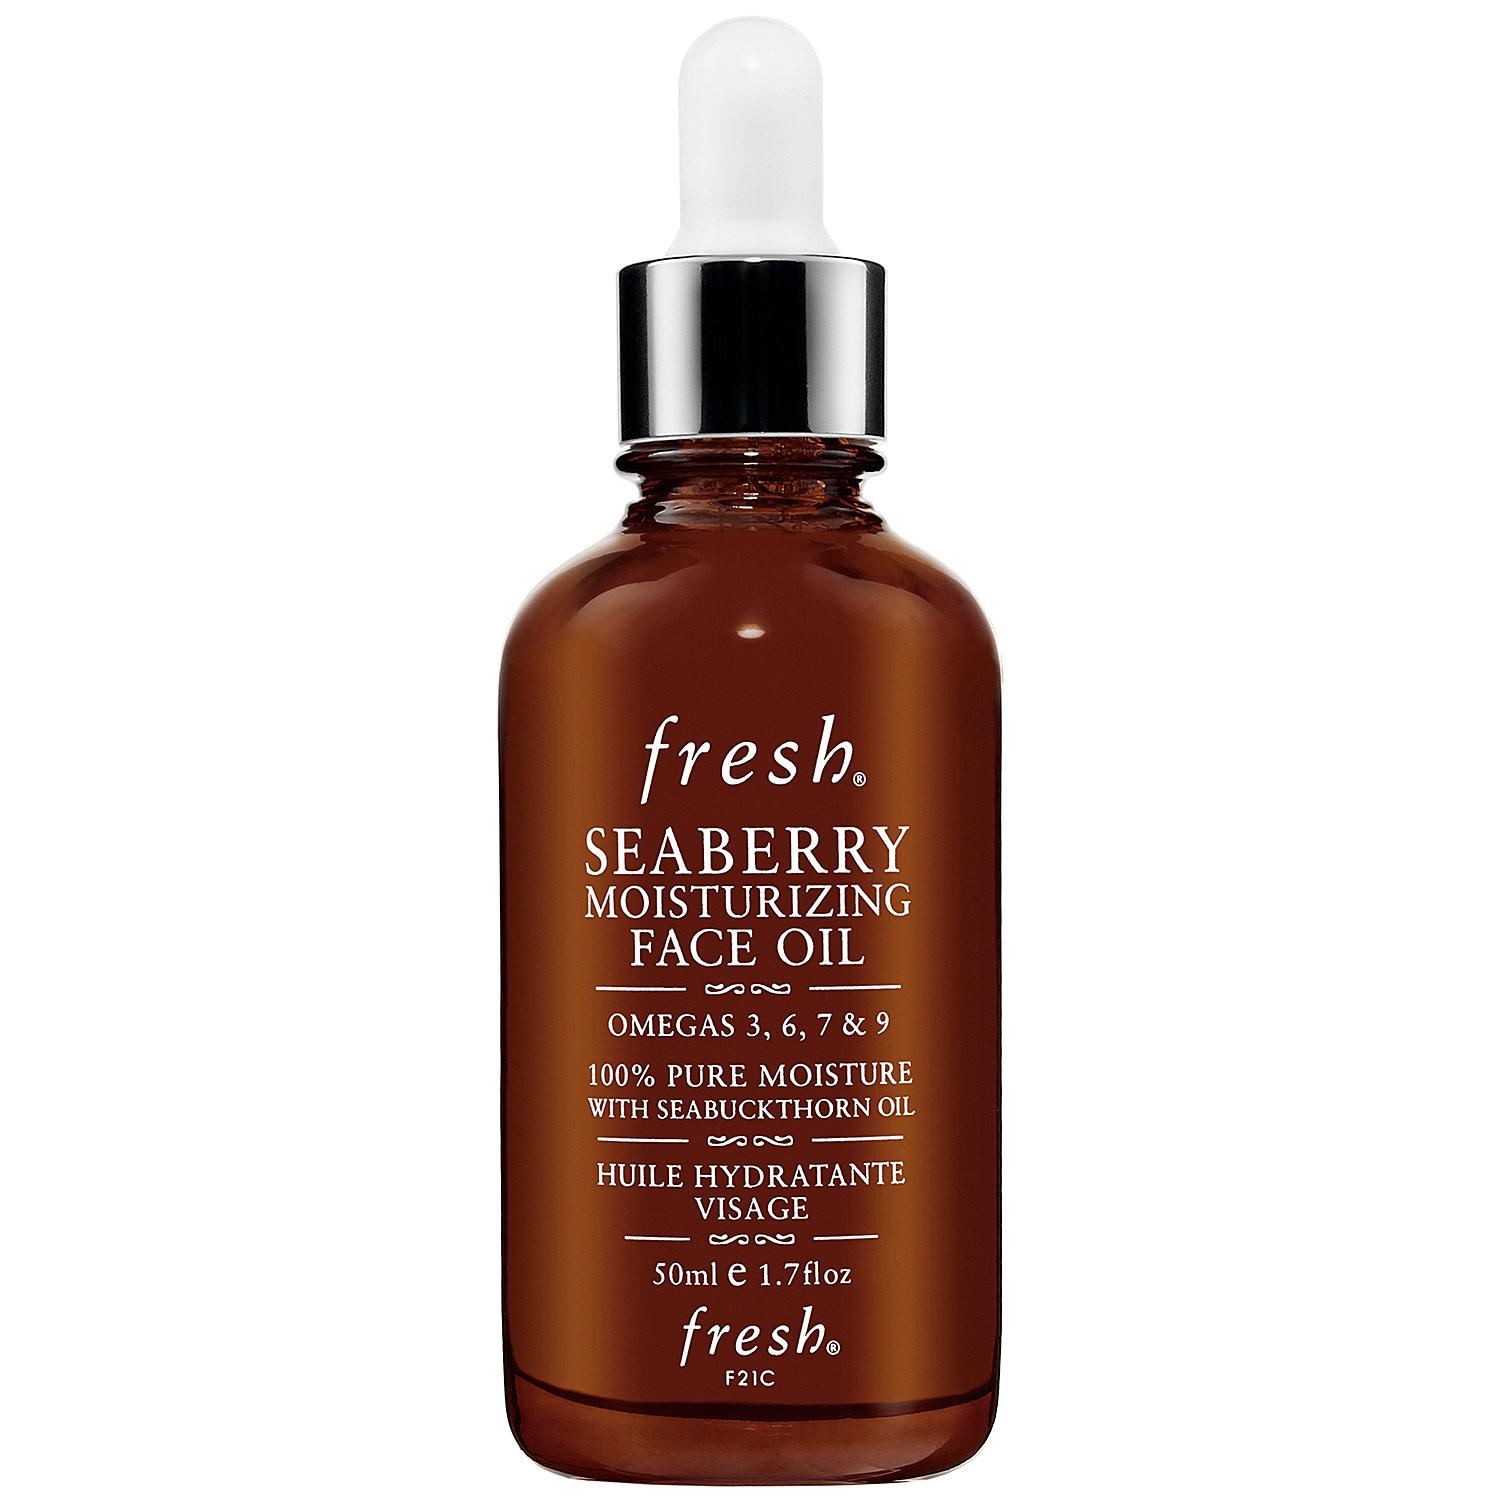 Seaberry Moisturizing Face Oil